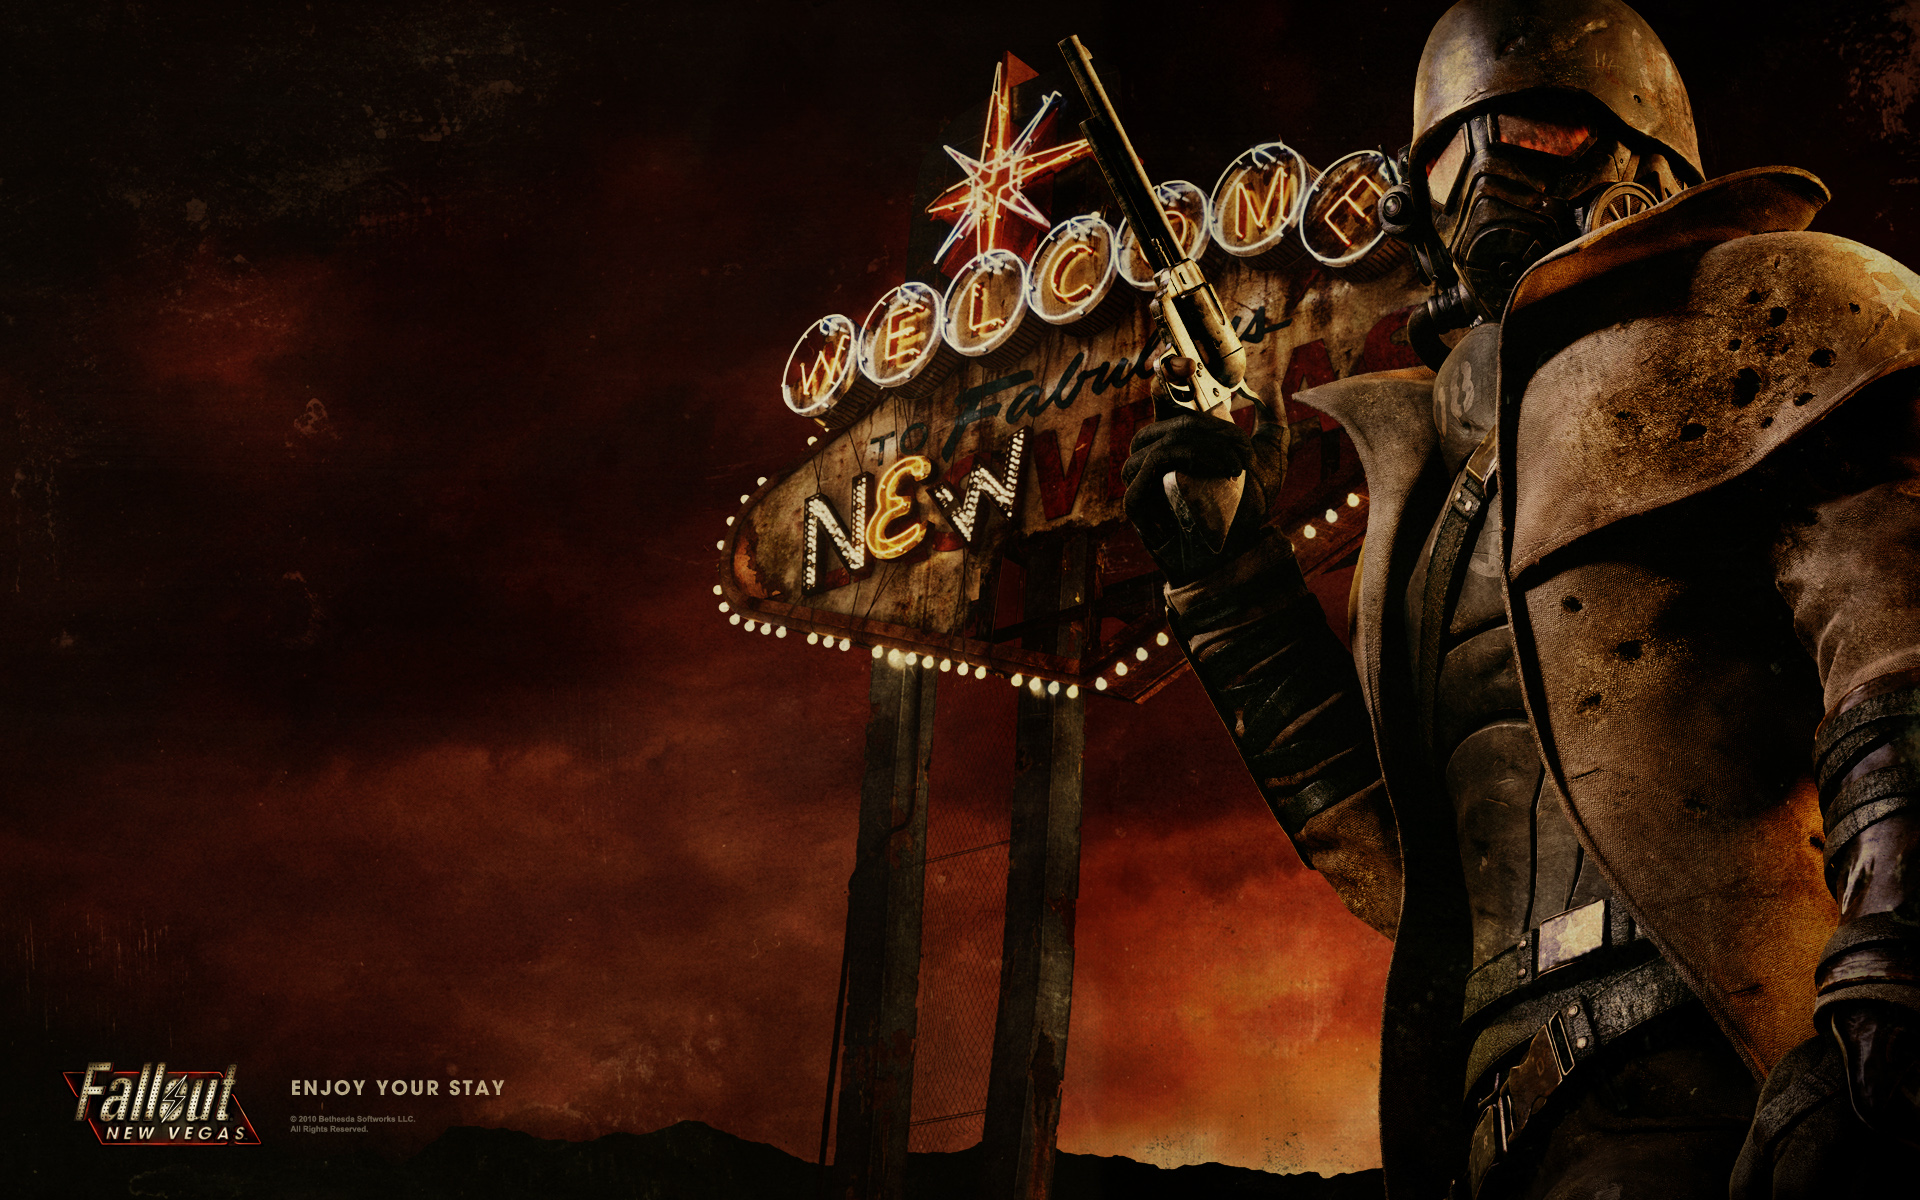 Fallout new vegas can you get unbanned from a casino